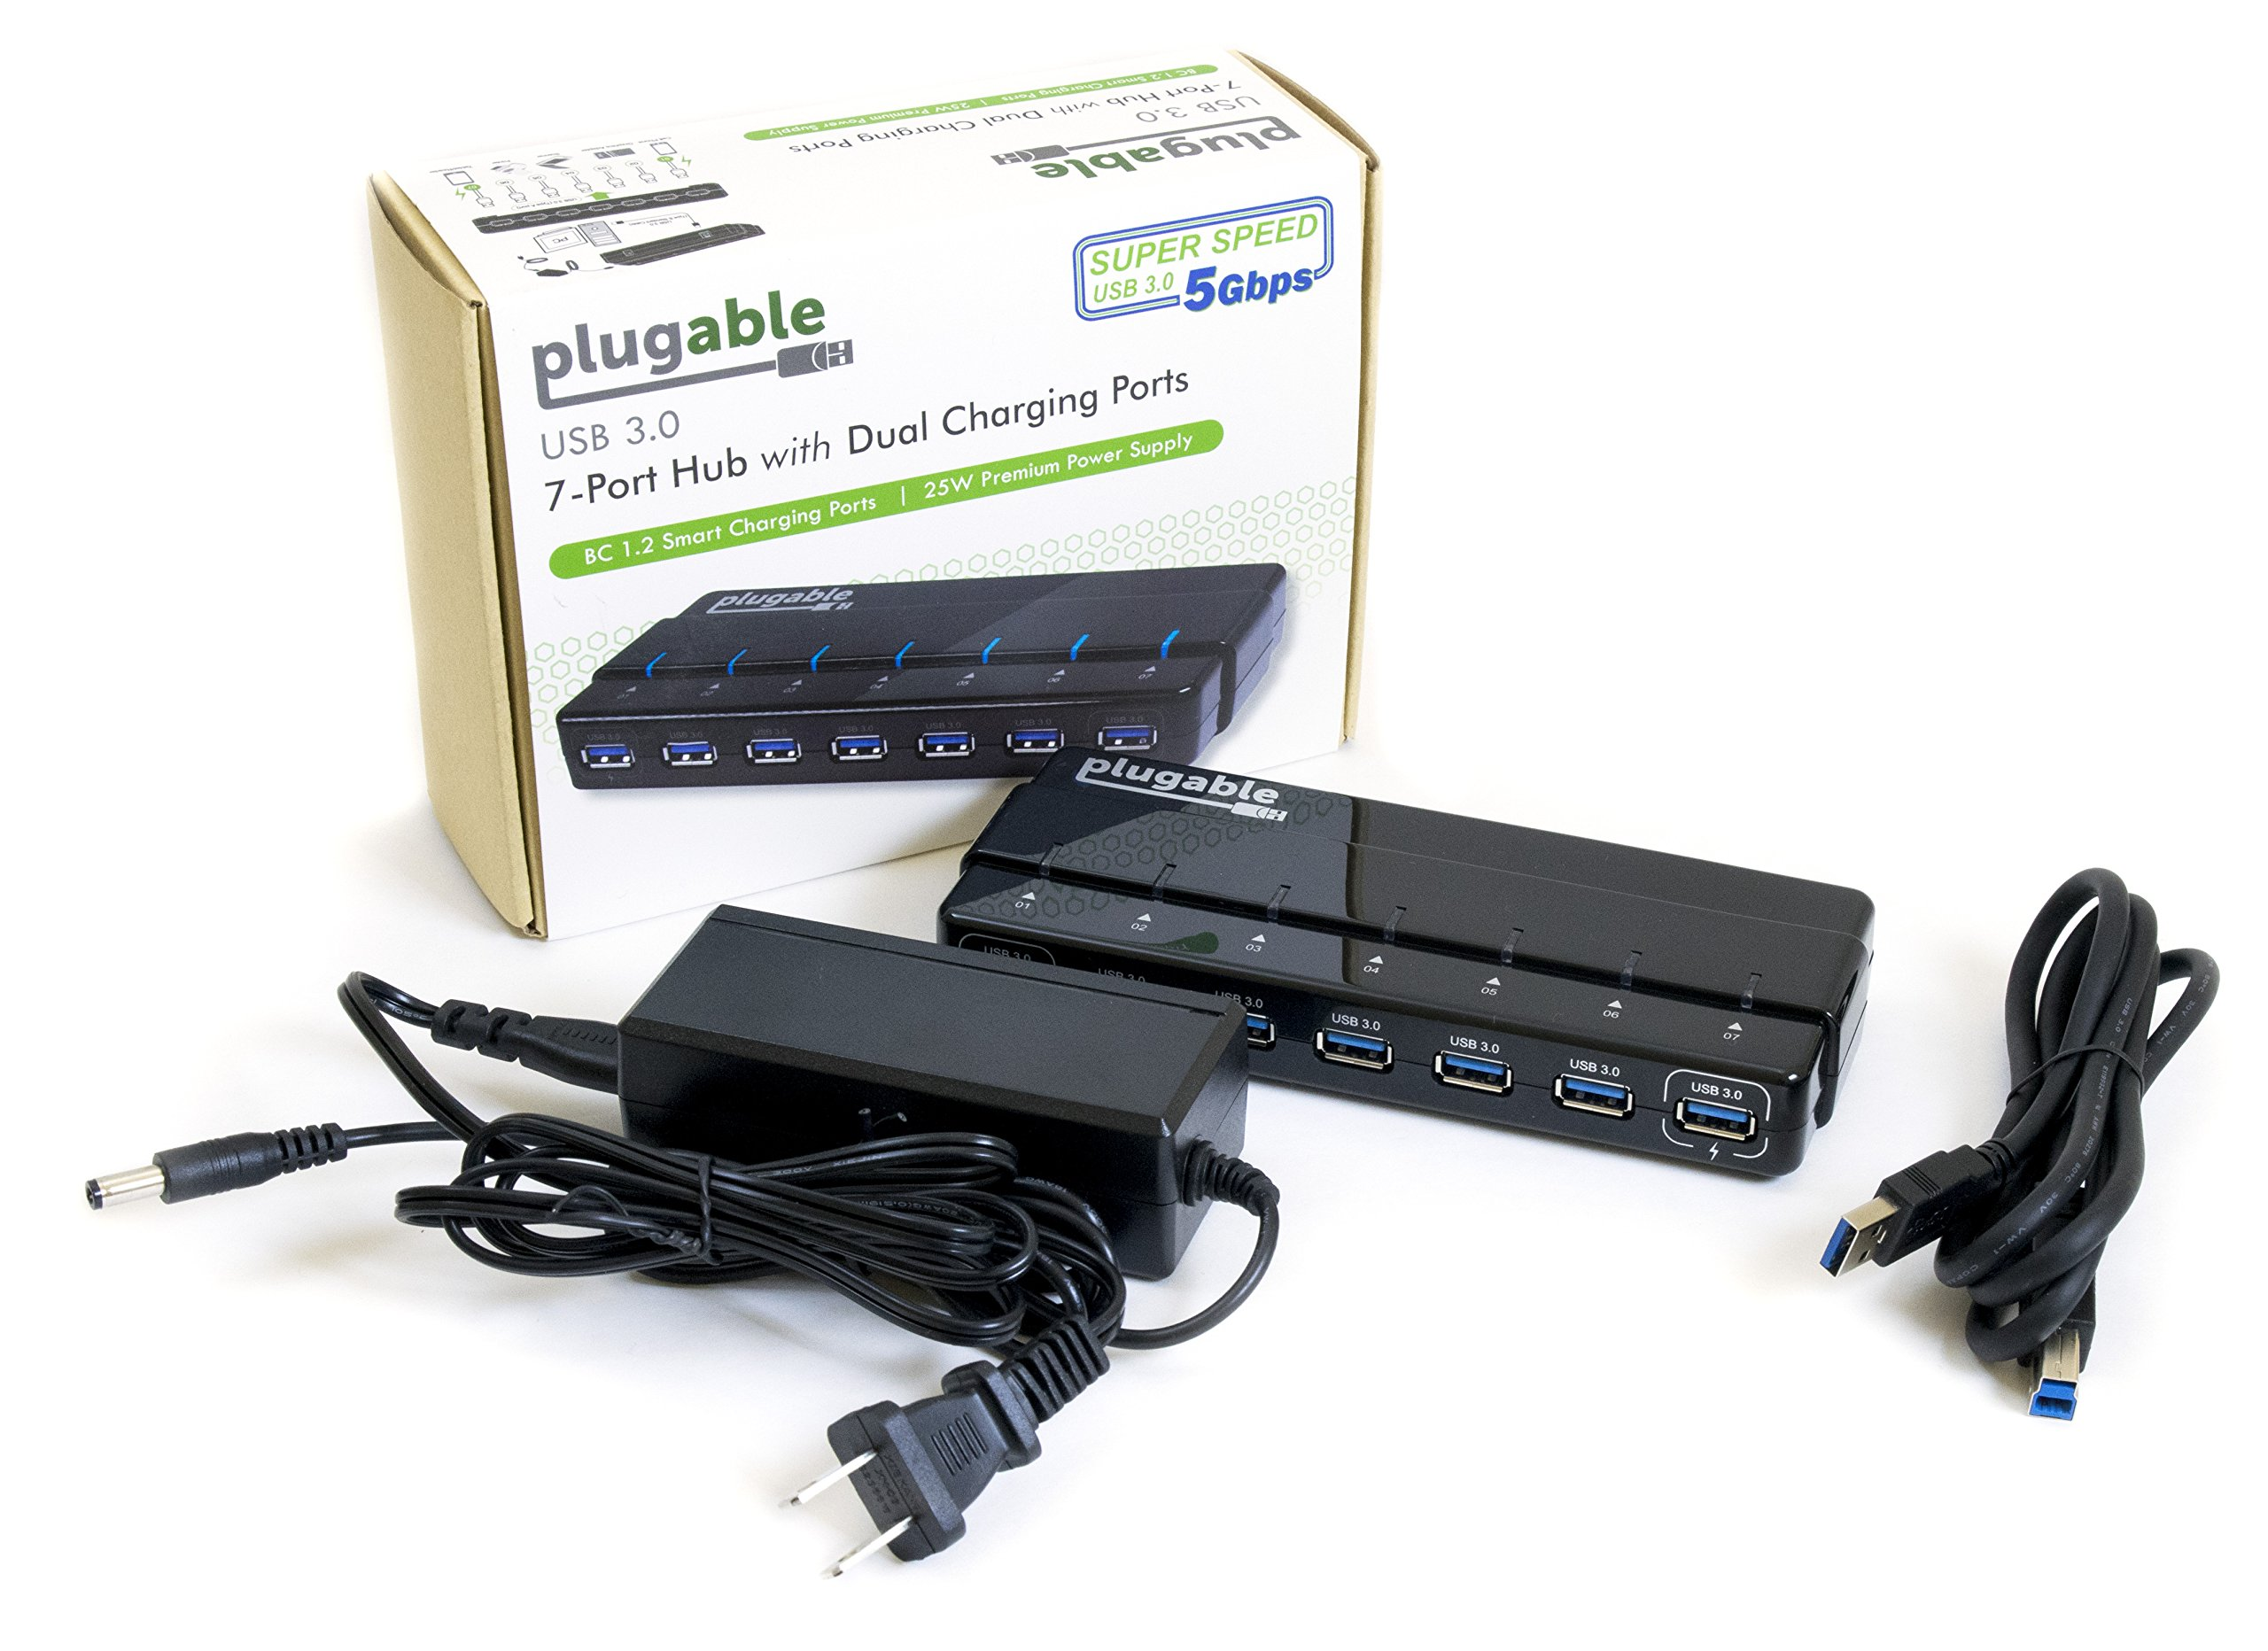 Galleon plugable 7 port usb 3 0 hub 25w powered usb hub - Plugable 7 port usb 3 0 superspeed hub ...